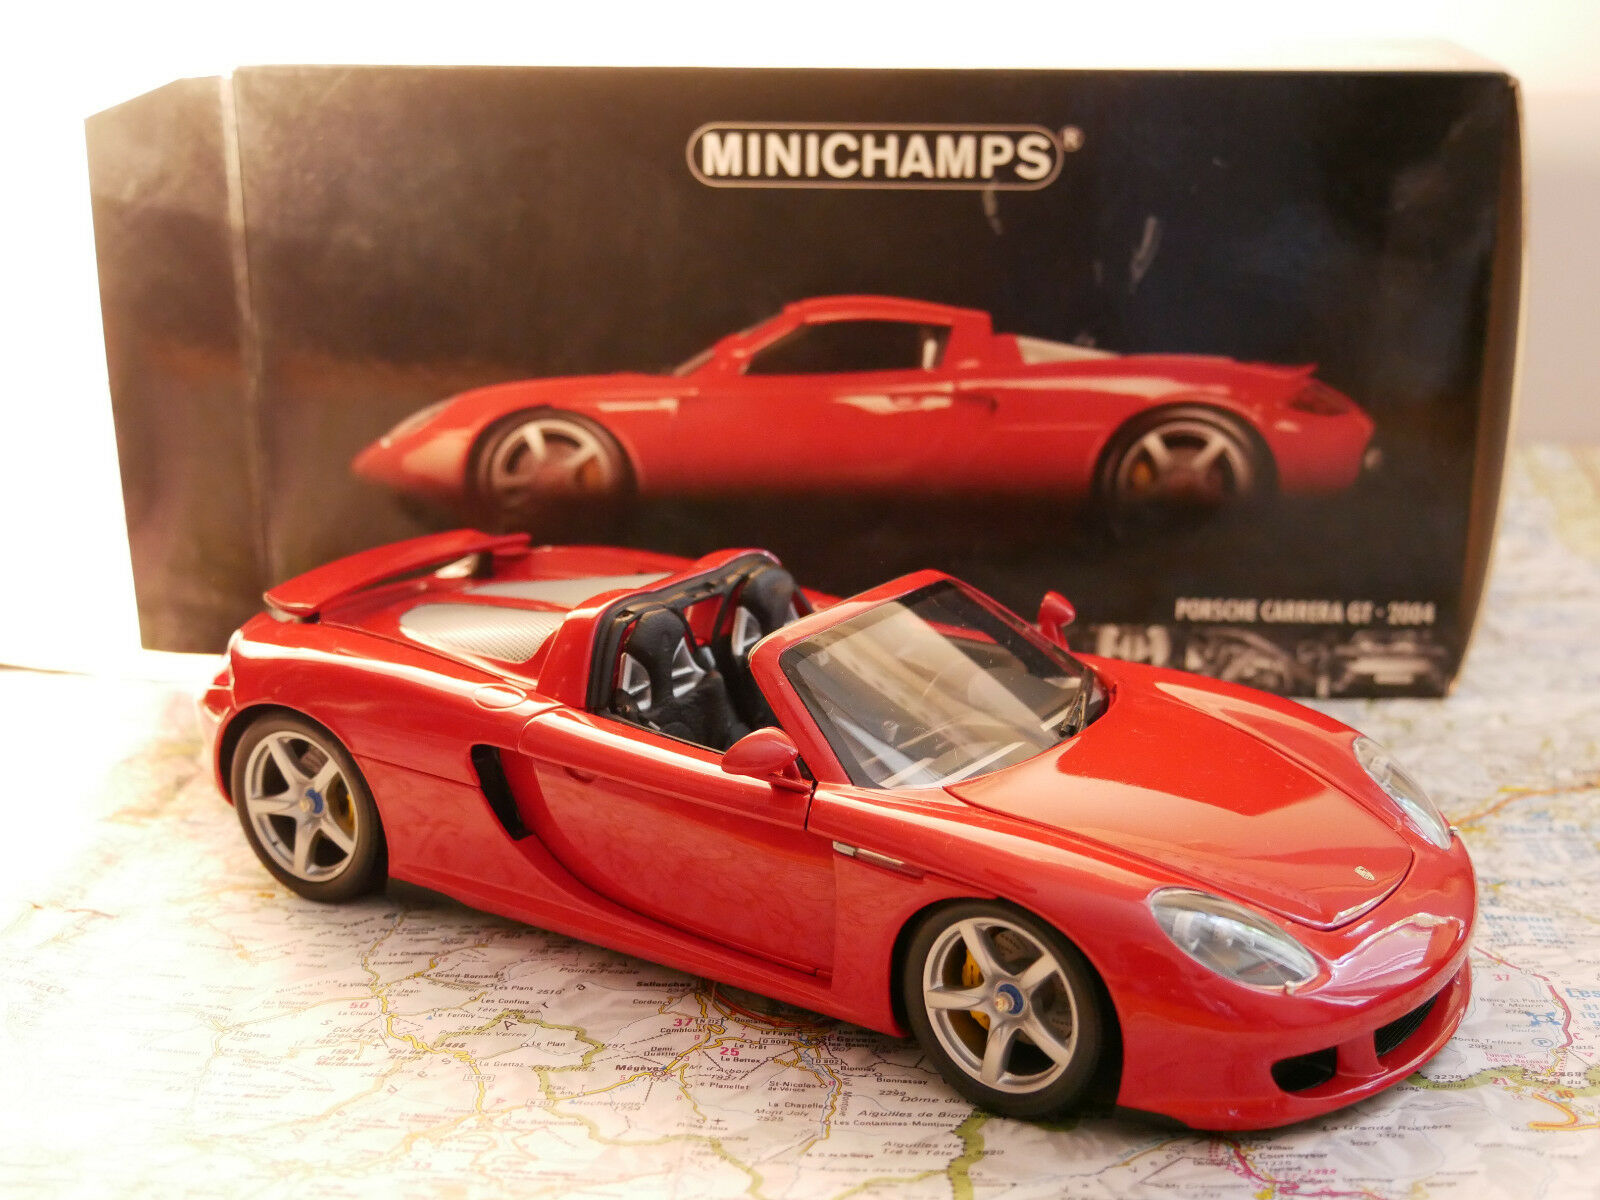 MINICHAMPS PORSCHE CARRERA GT rojo 2004  ART. 100062630  1 18 NEW